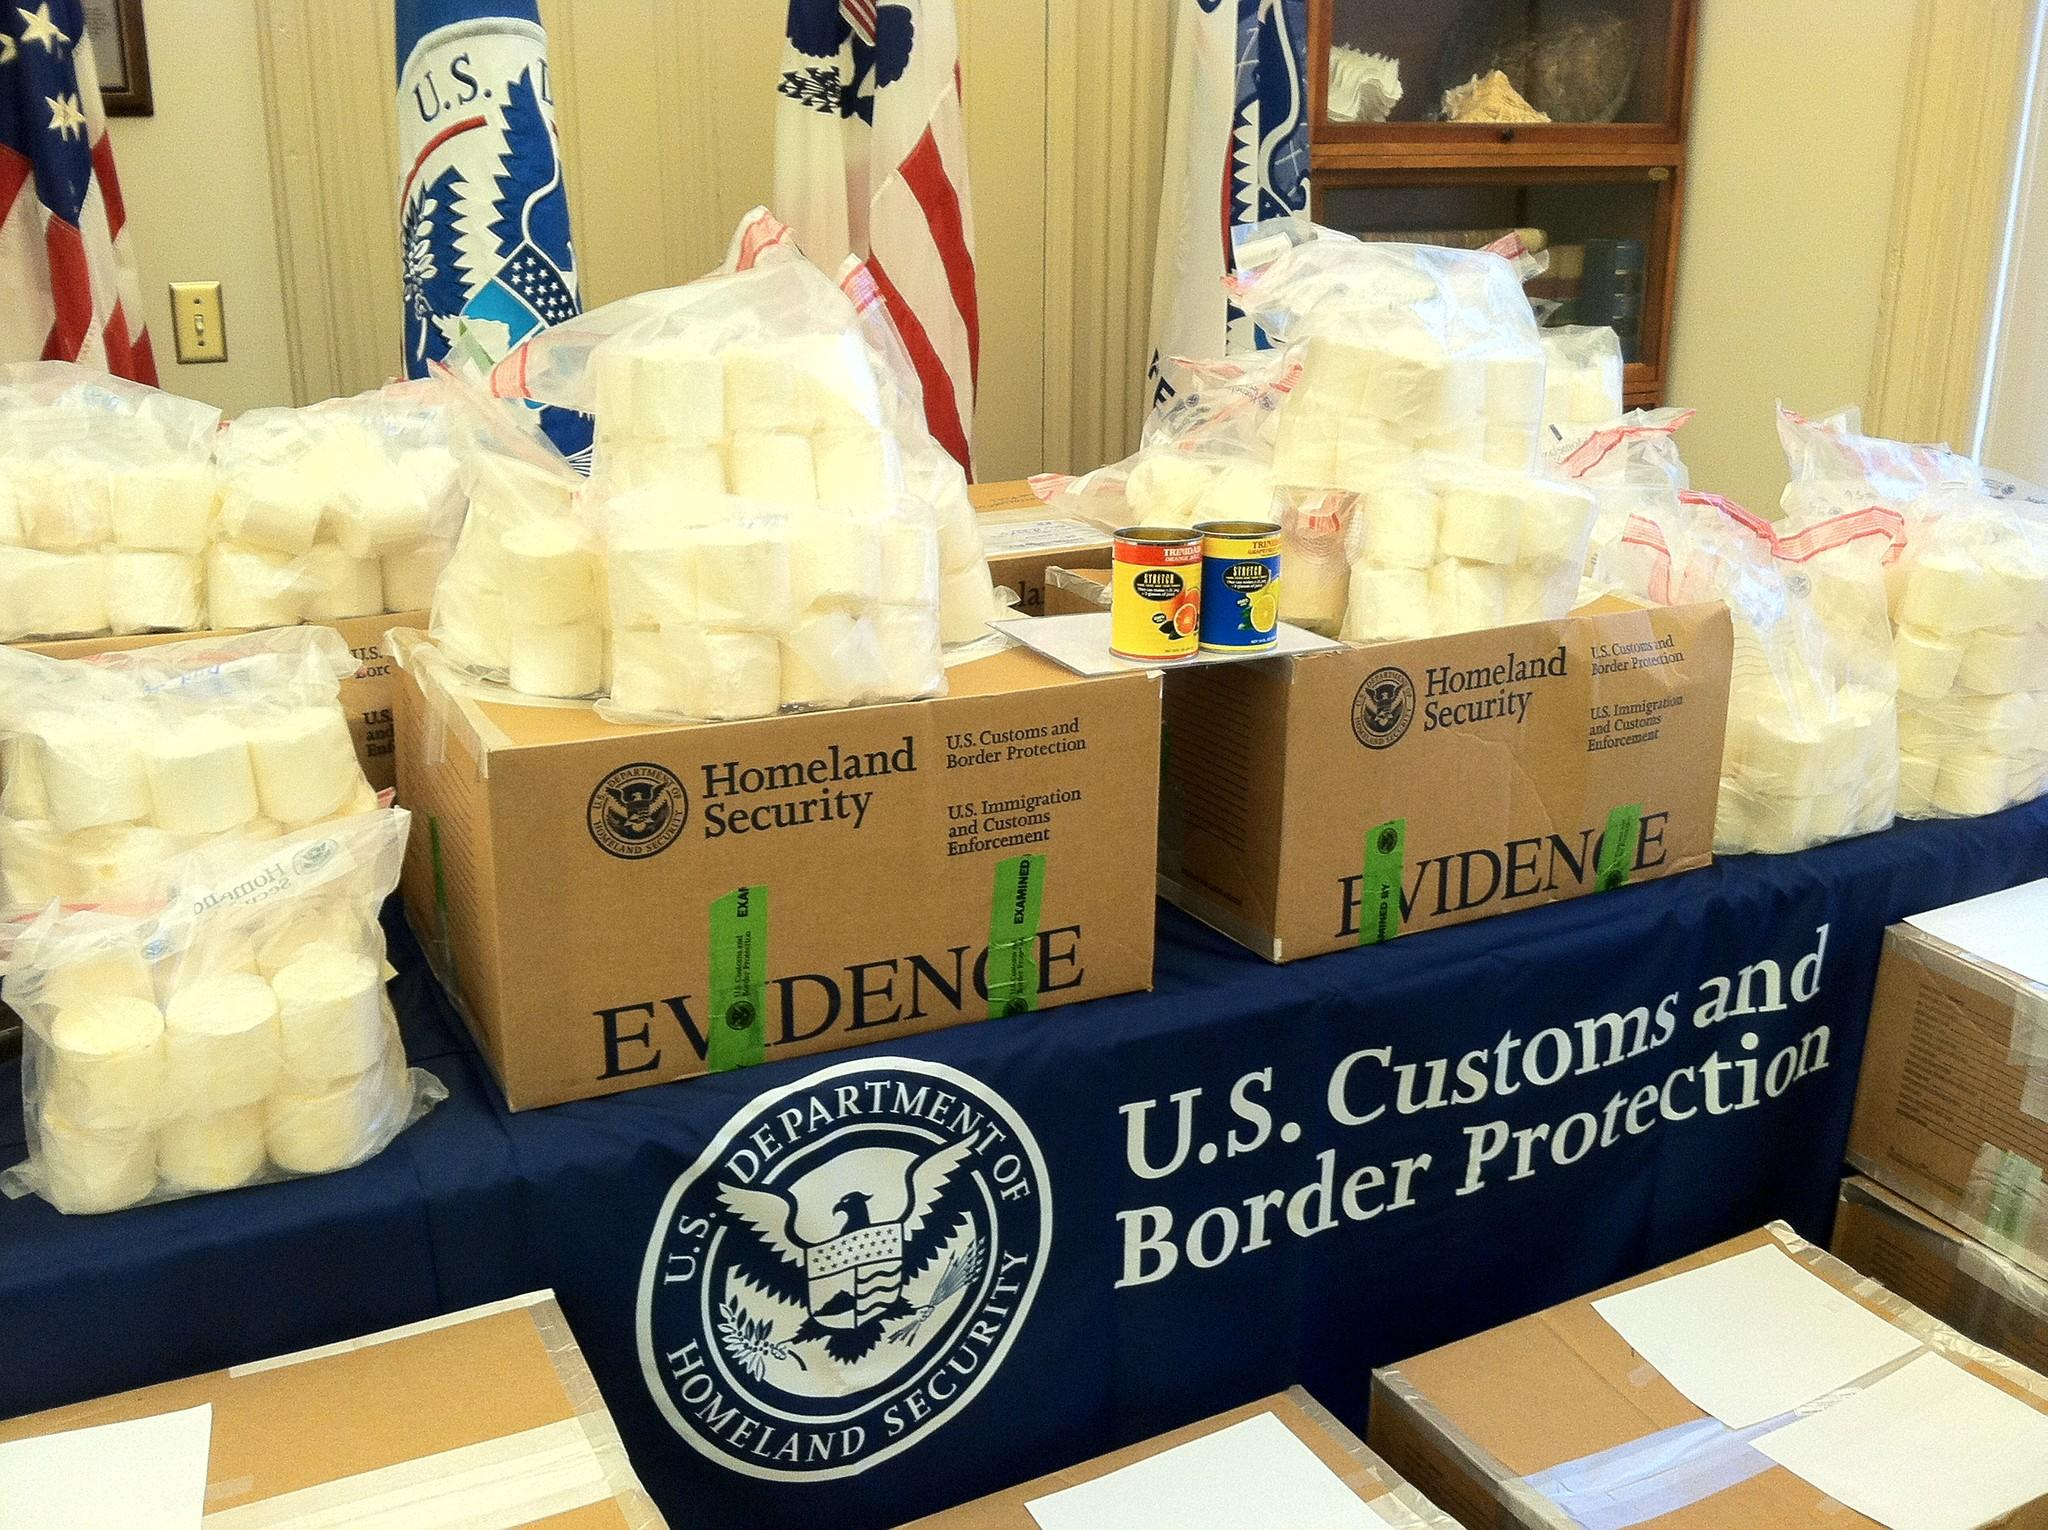 A portion of the 700 pounds of cocaine uncovered at the Port of Norfolk.